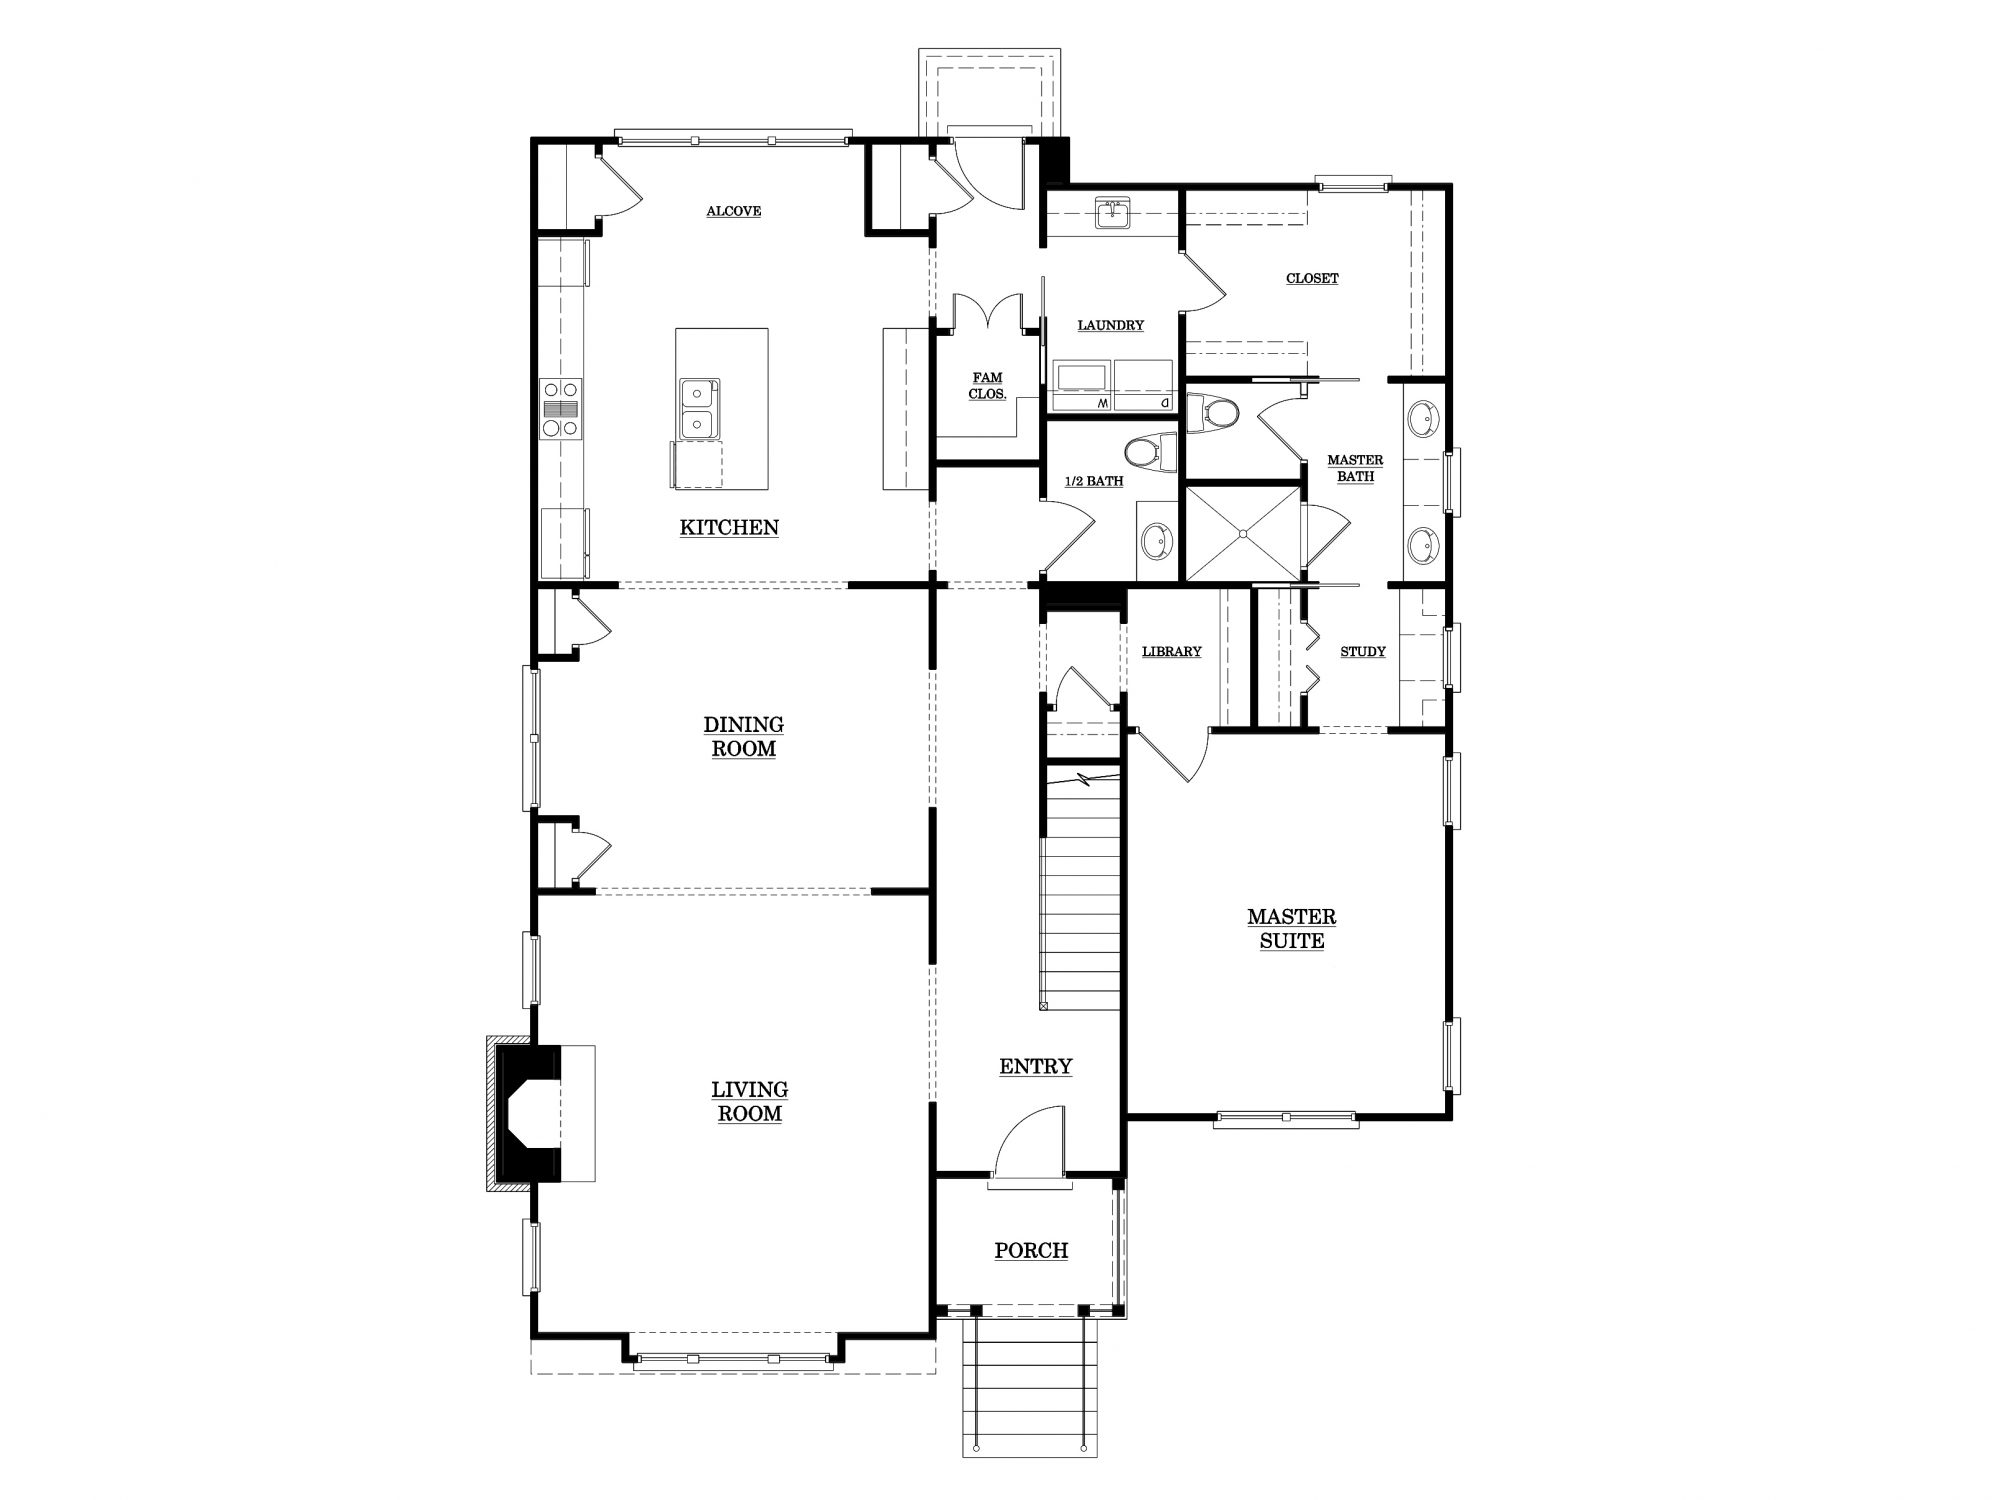 Dogwood Place First Floor Plan